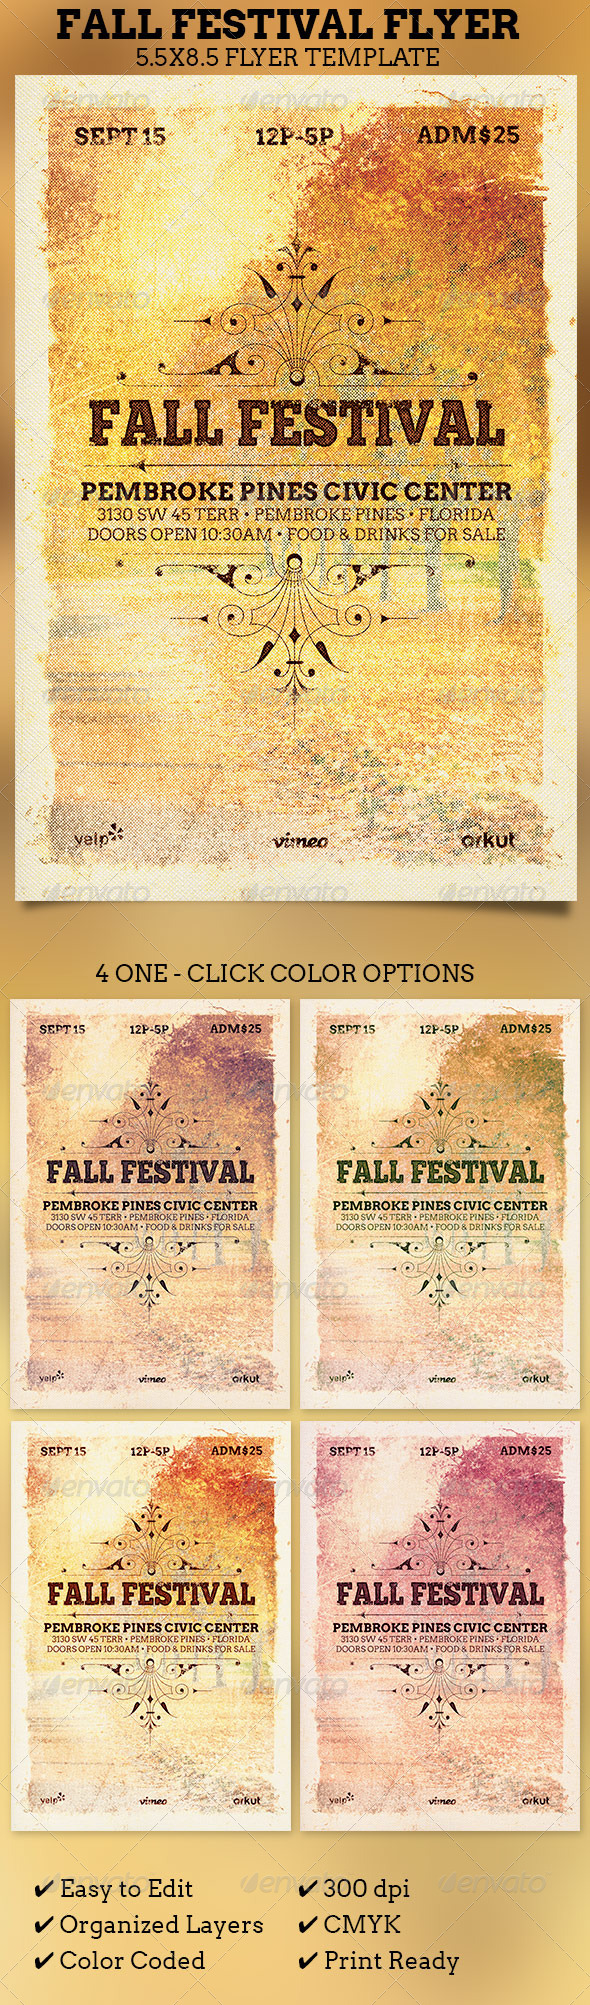 Fall Festival Flyer Template  - Church Flyers